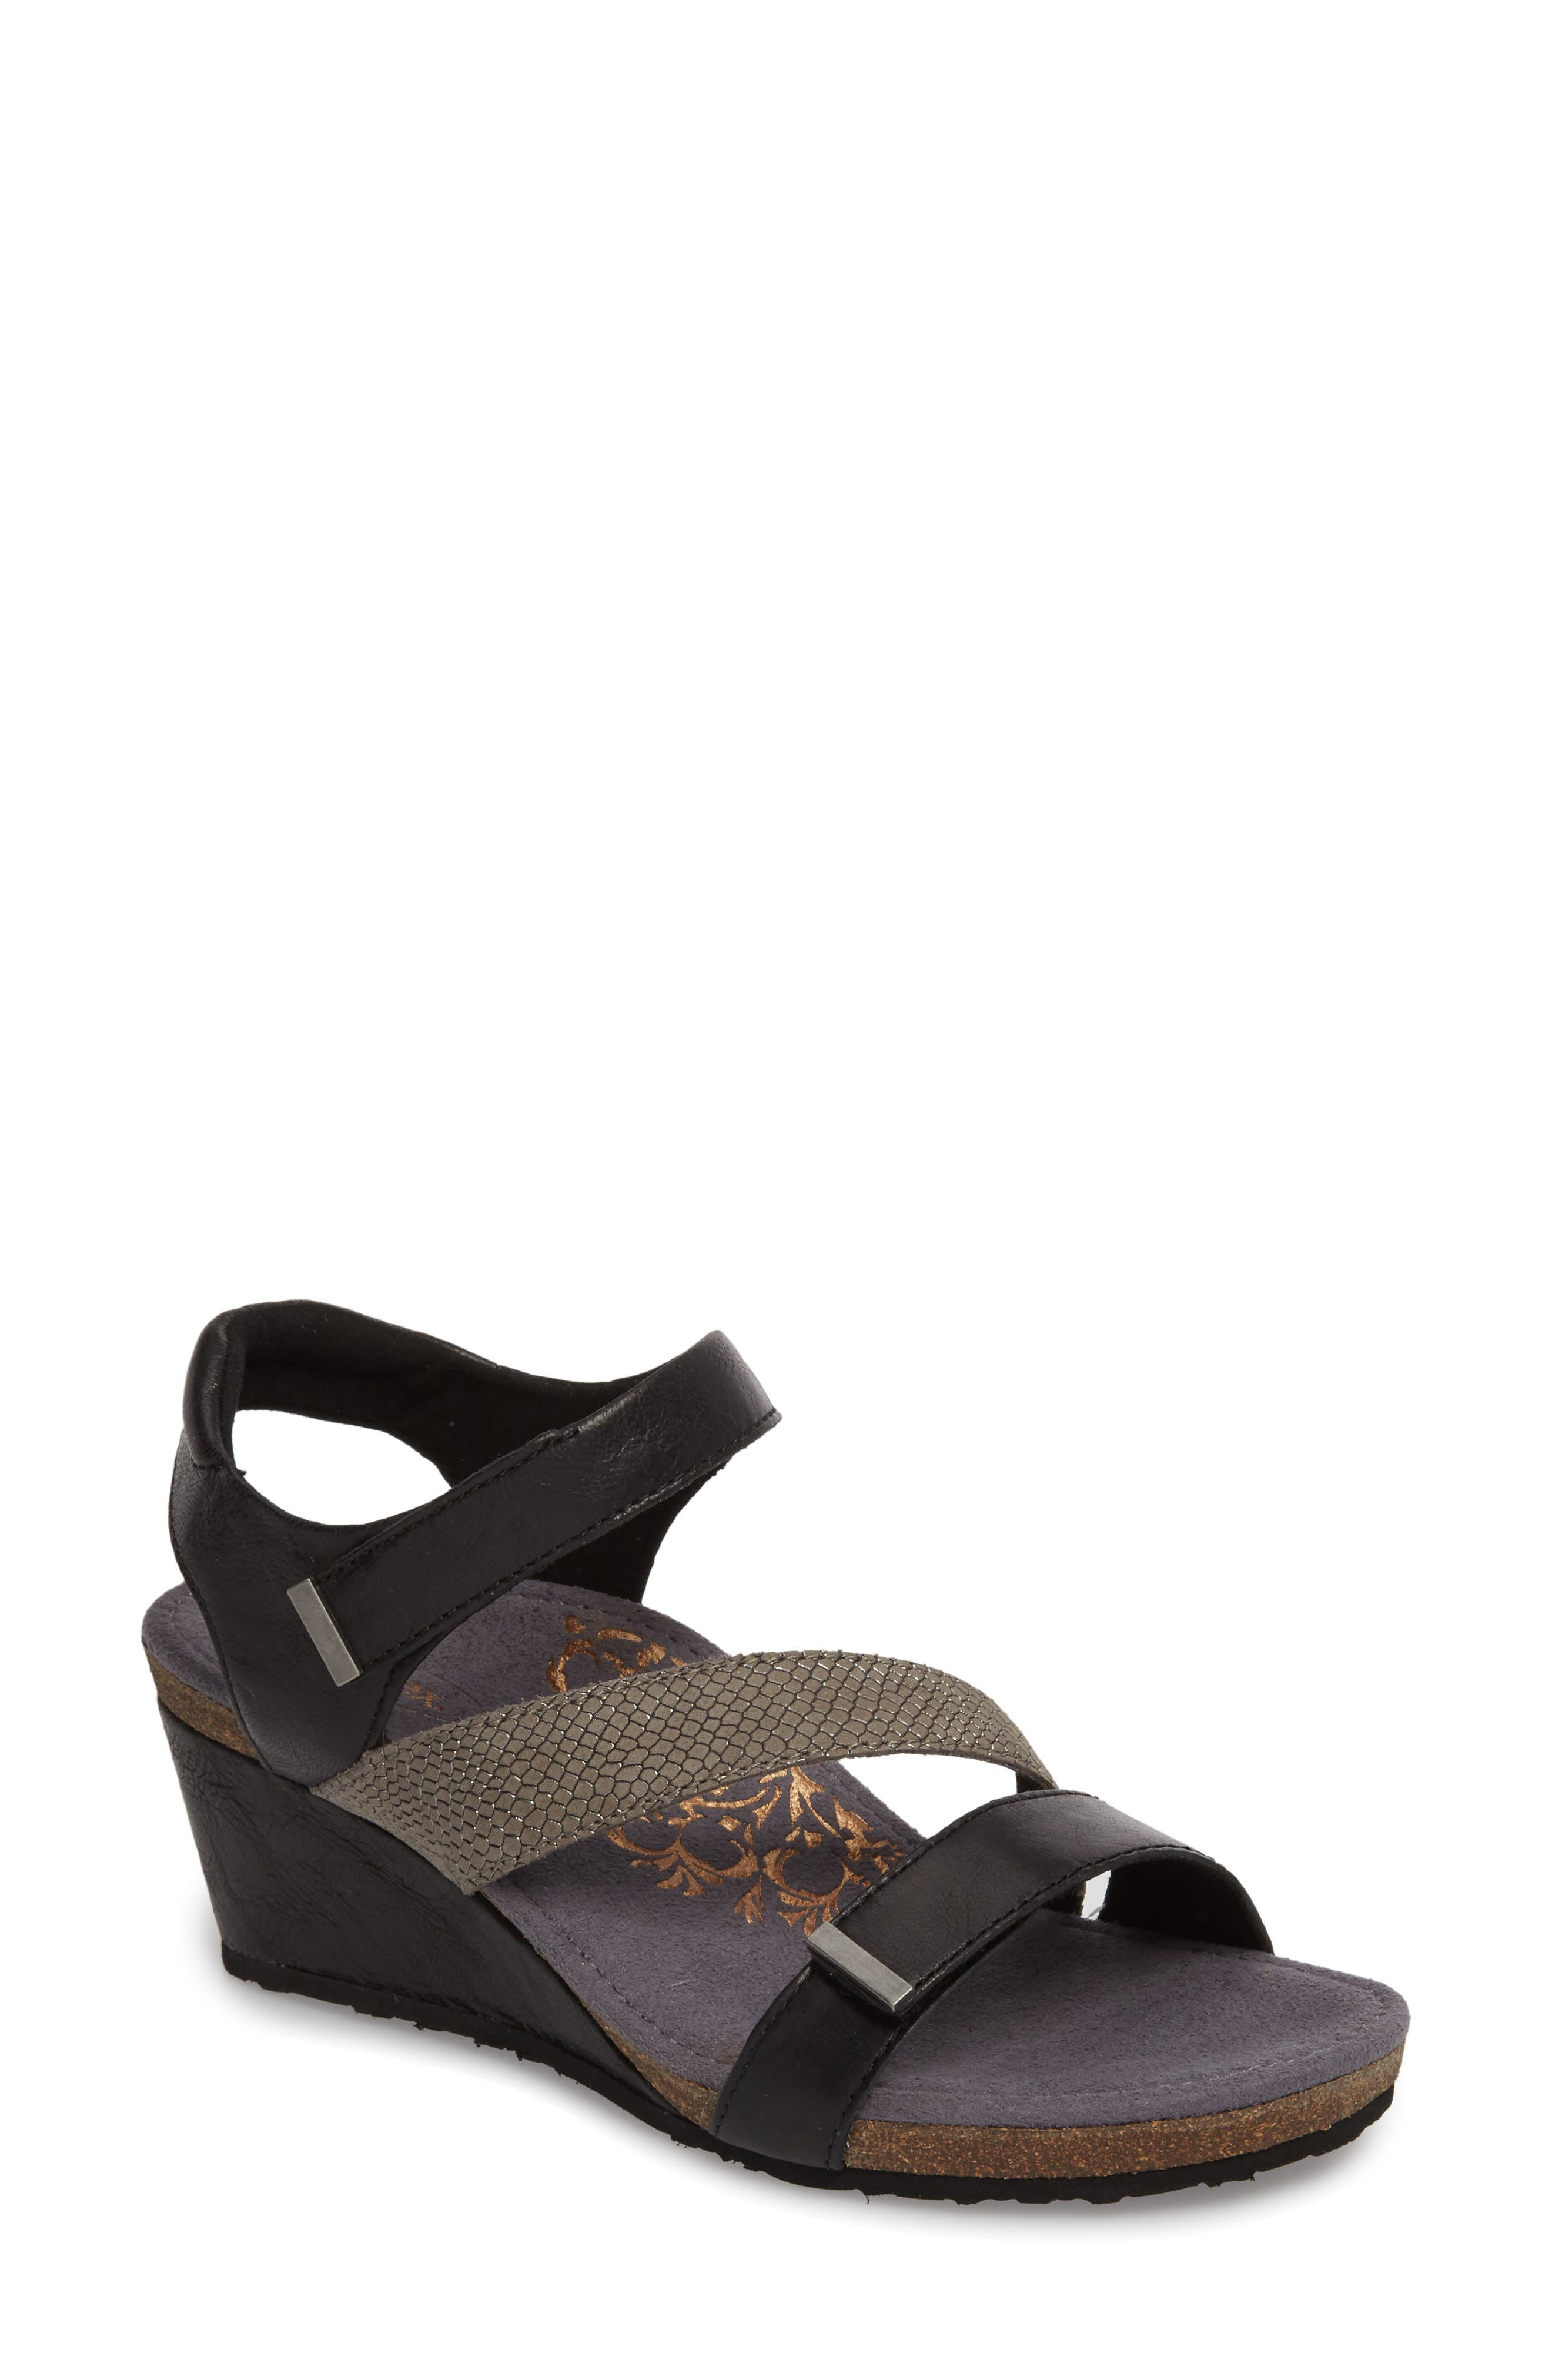 Aetrex Brynn Asymmetrical Wedge Sandal (Women)